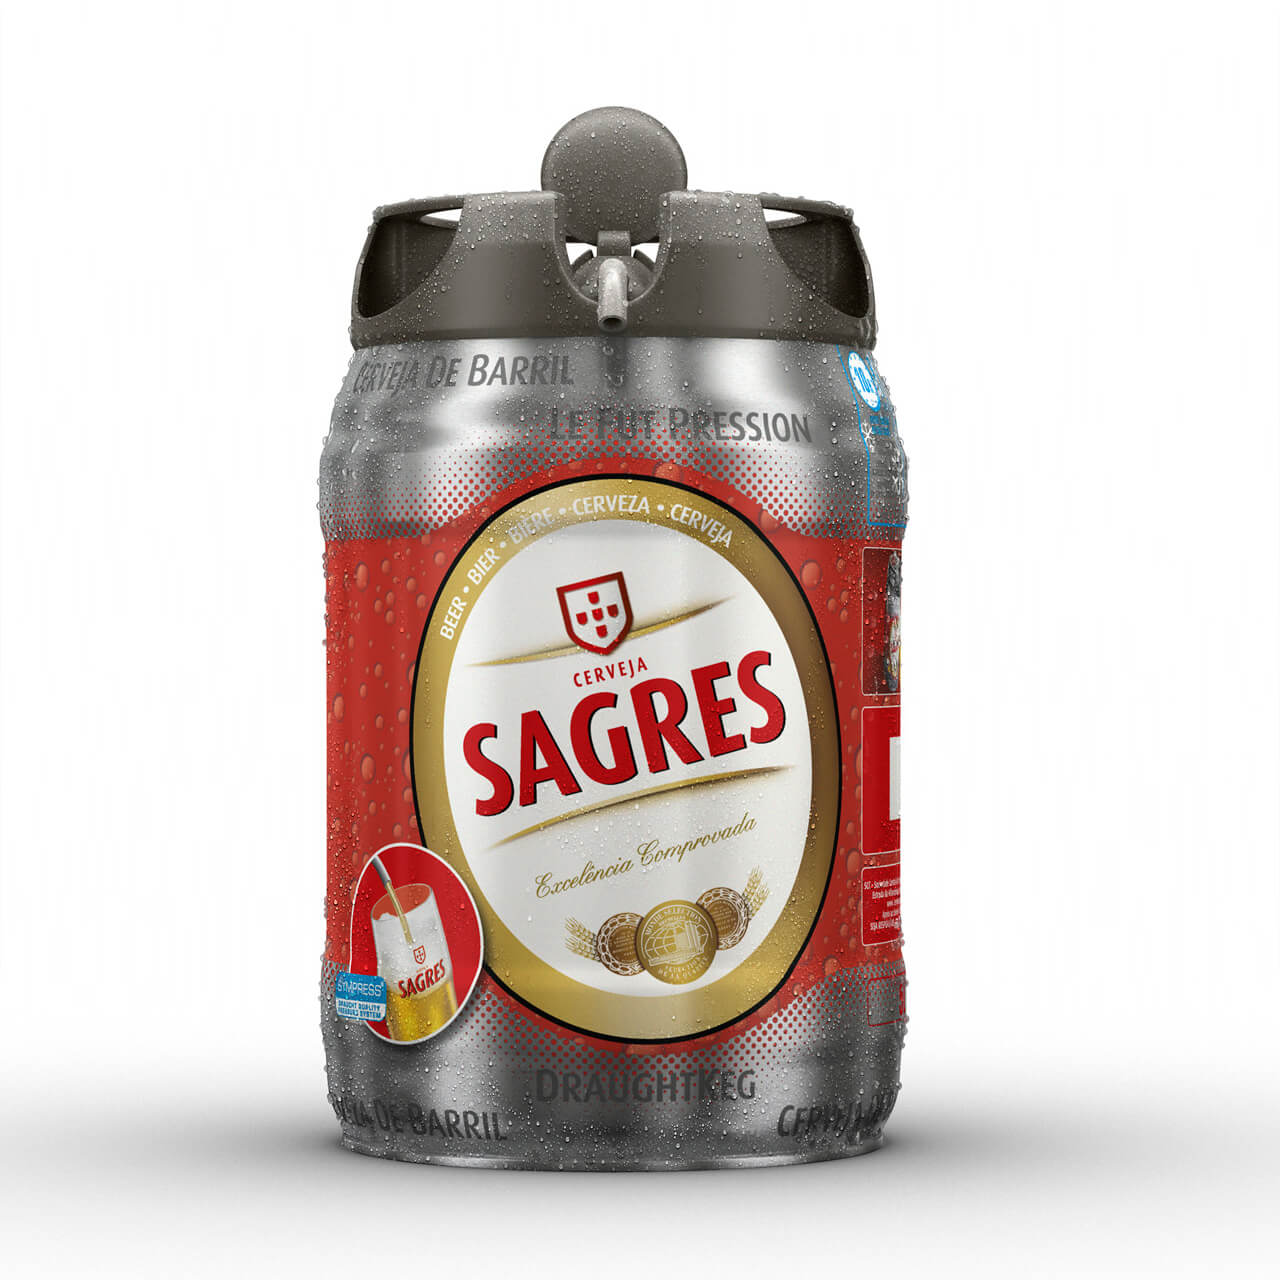 CGI Product Image of Lager barrel